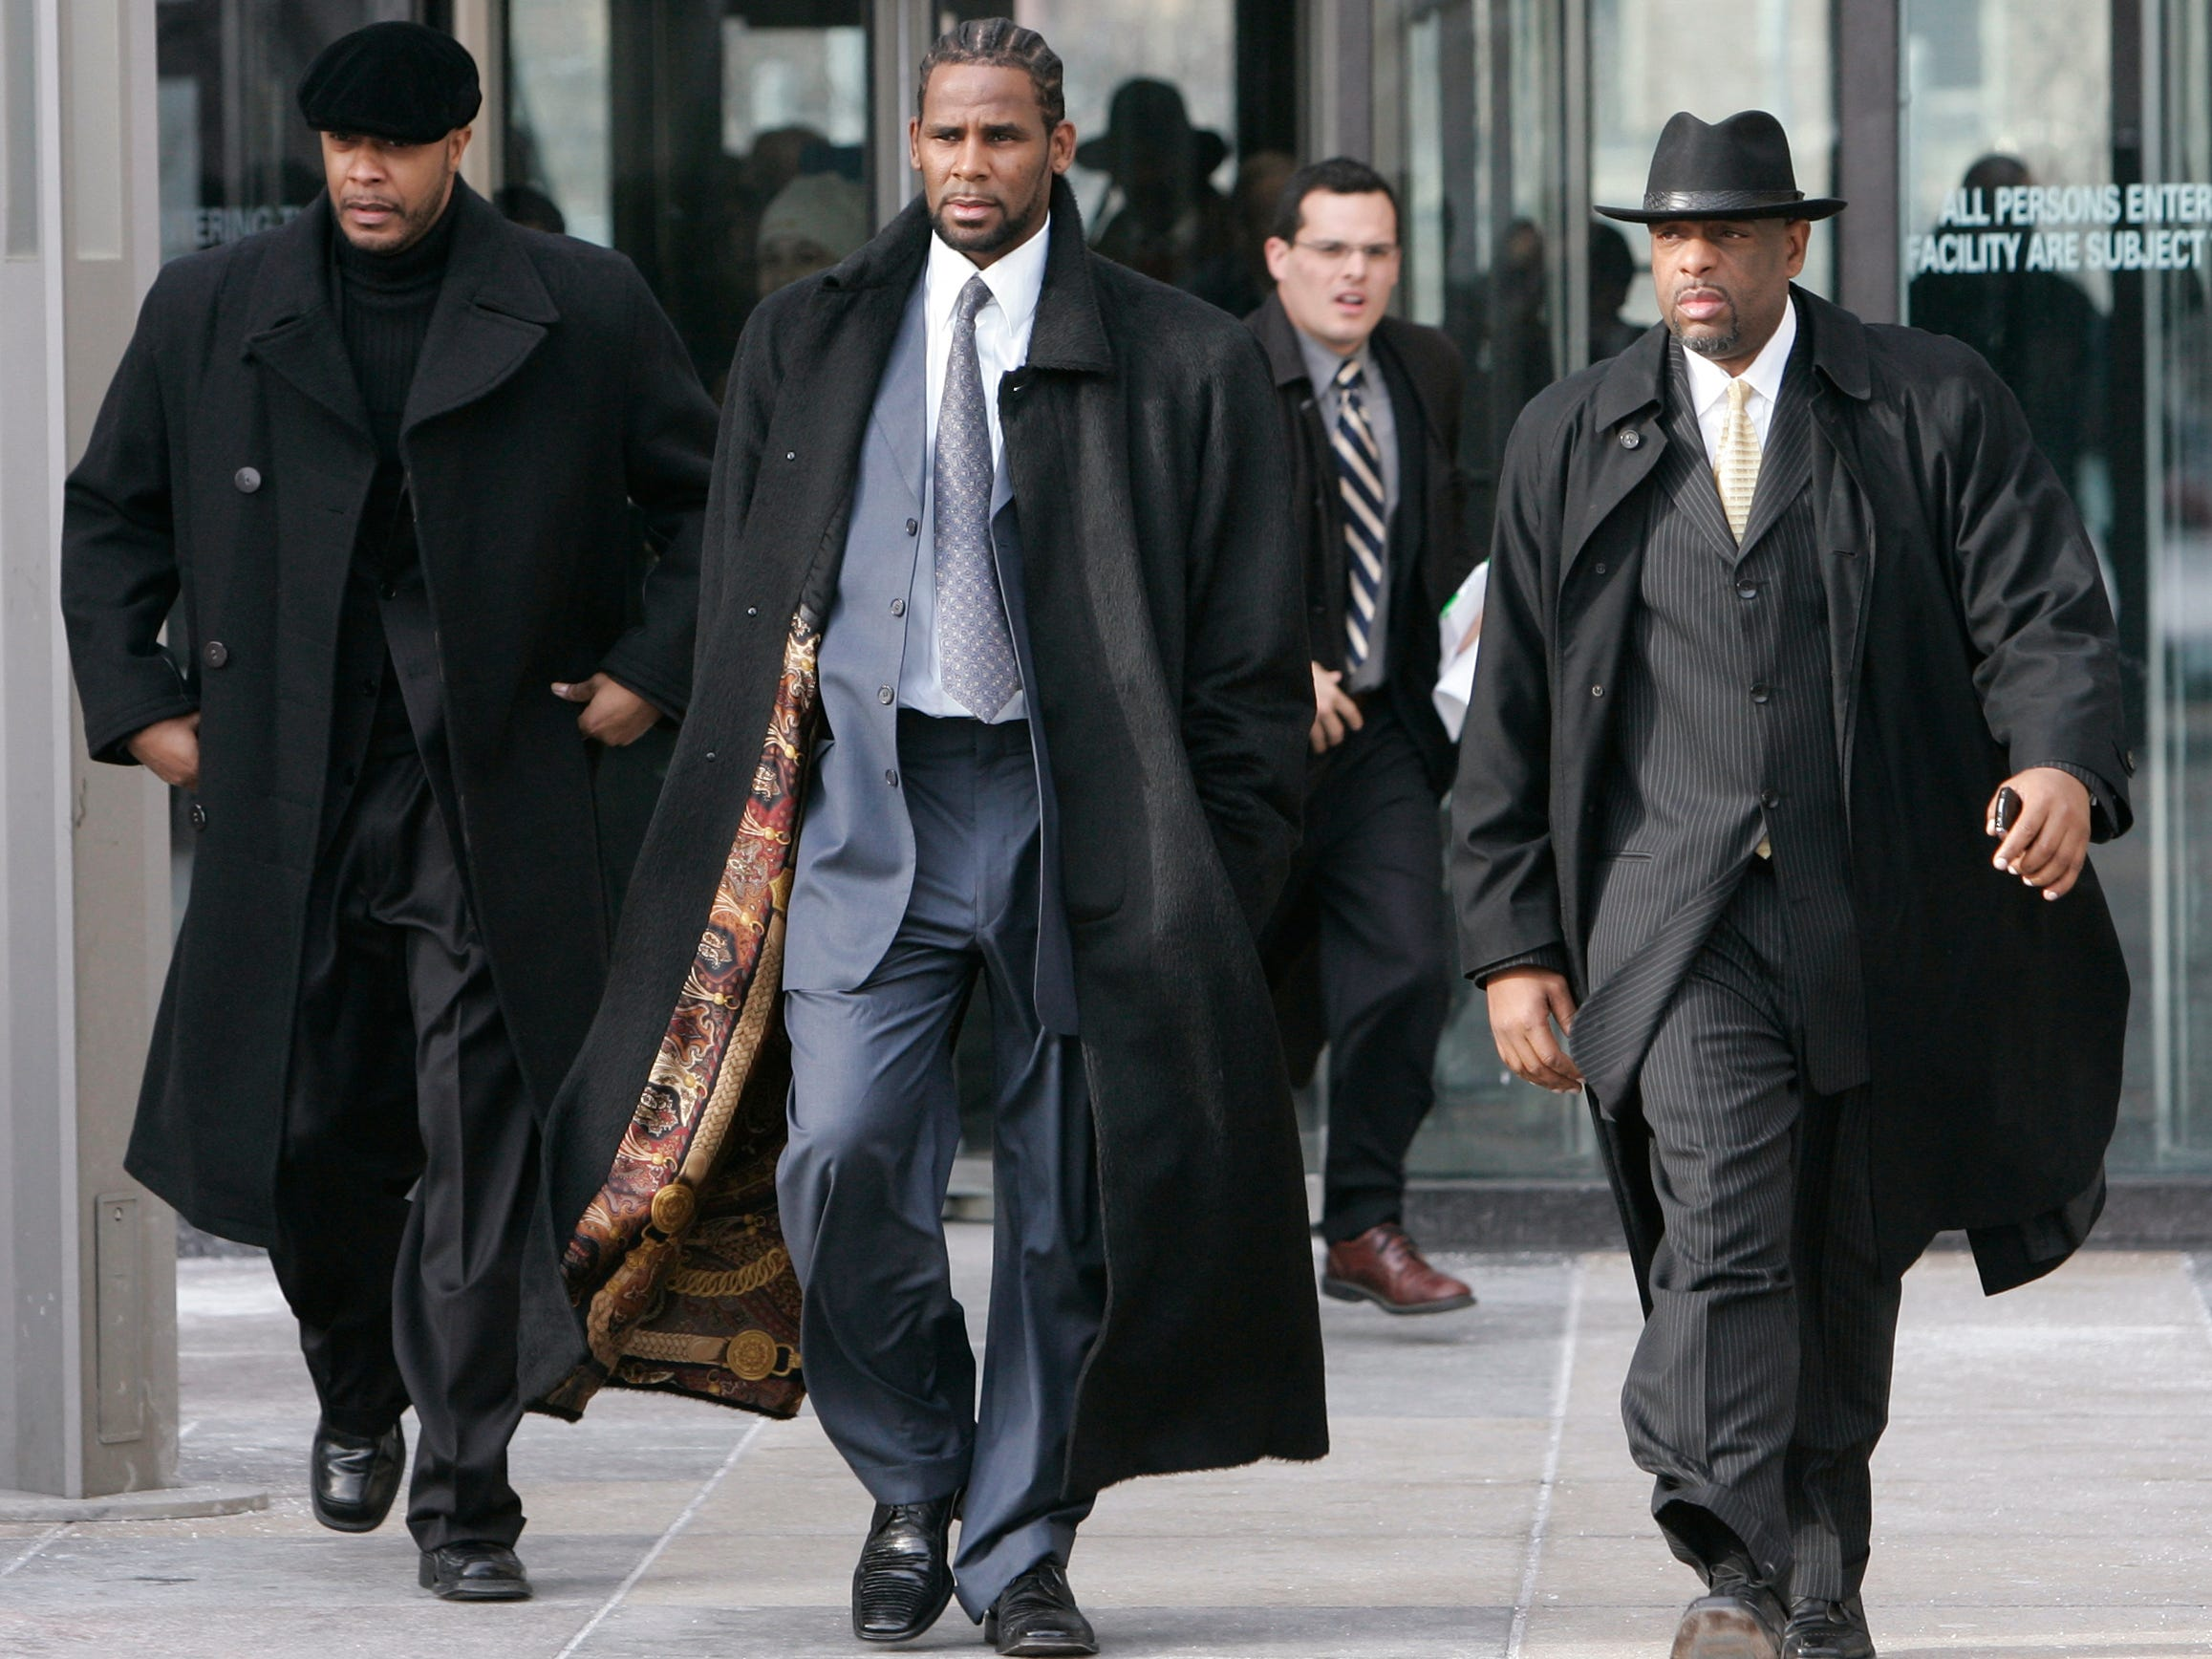 R. Kelly, center, leaves Cook County courthouse following his child pornography hearing on Dec. 20, 2007, in Chicago.